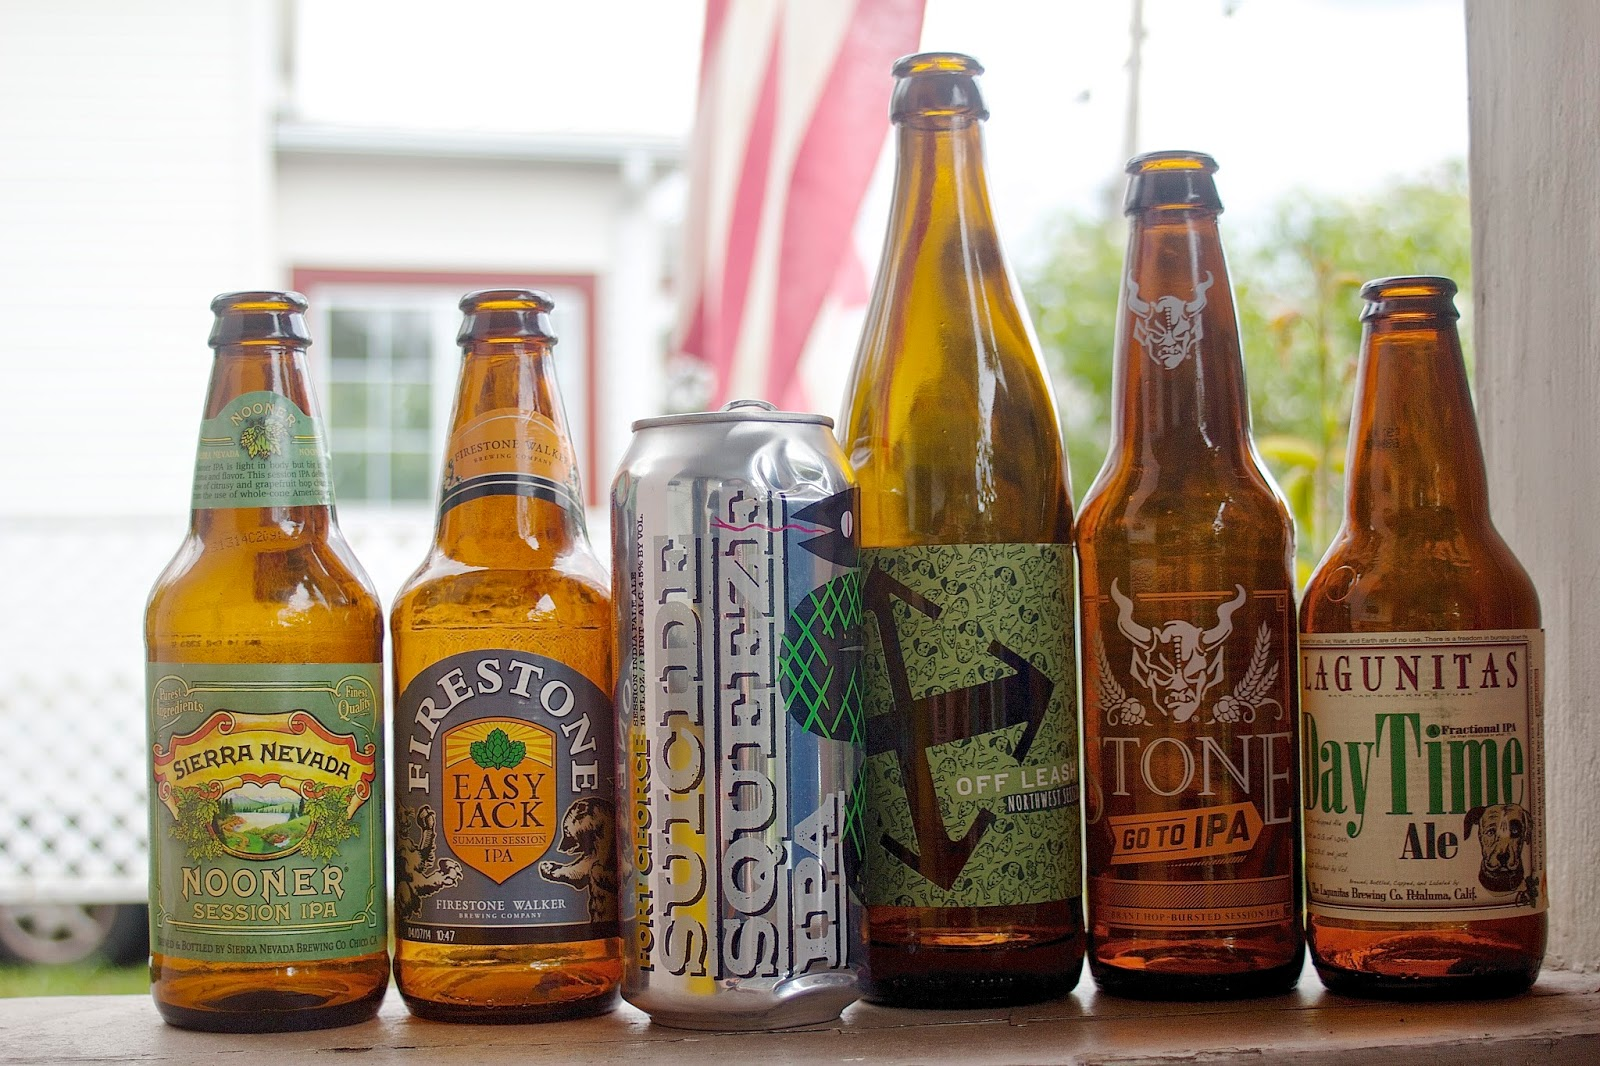 """dcccaa25c78f4 Perhaps the hottest trend in beer right now is the rise of the """"Session IPA"""